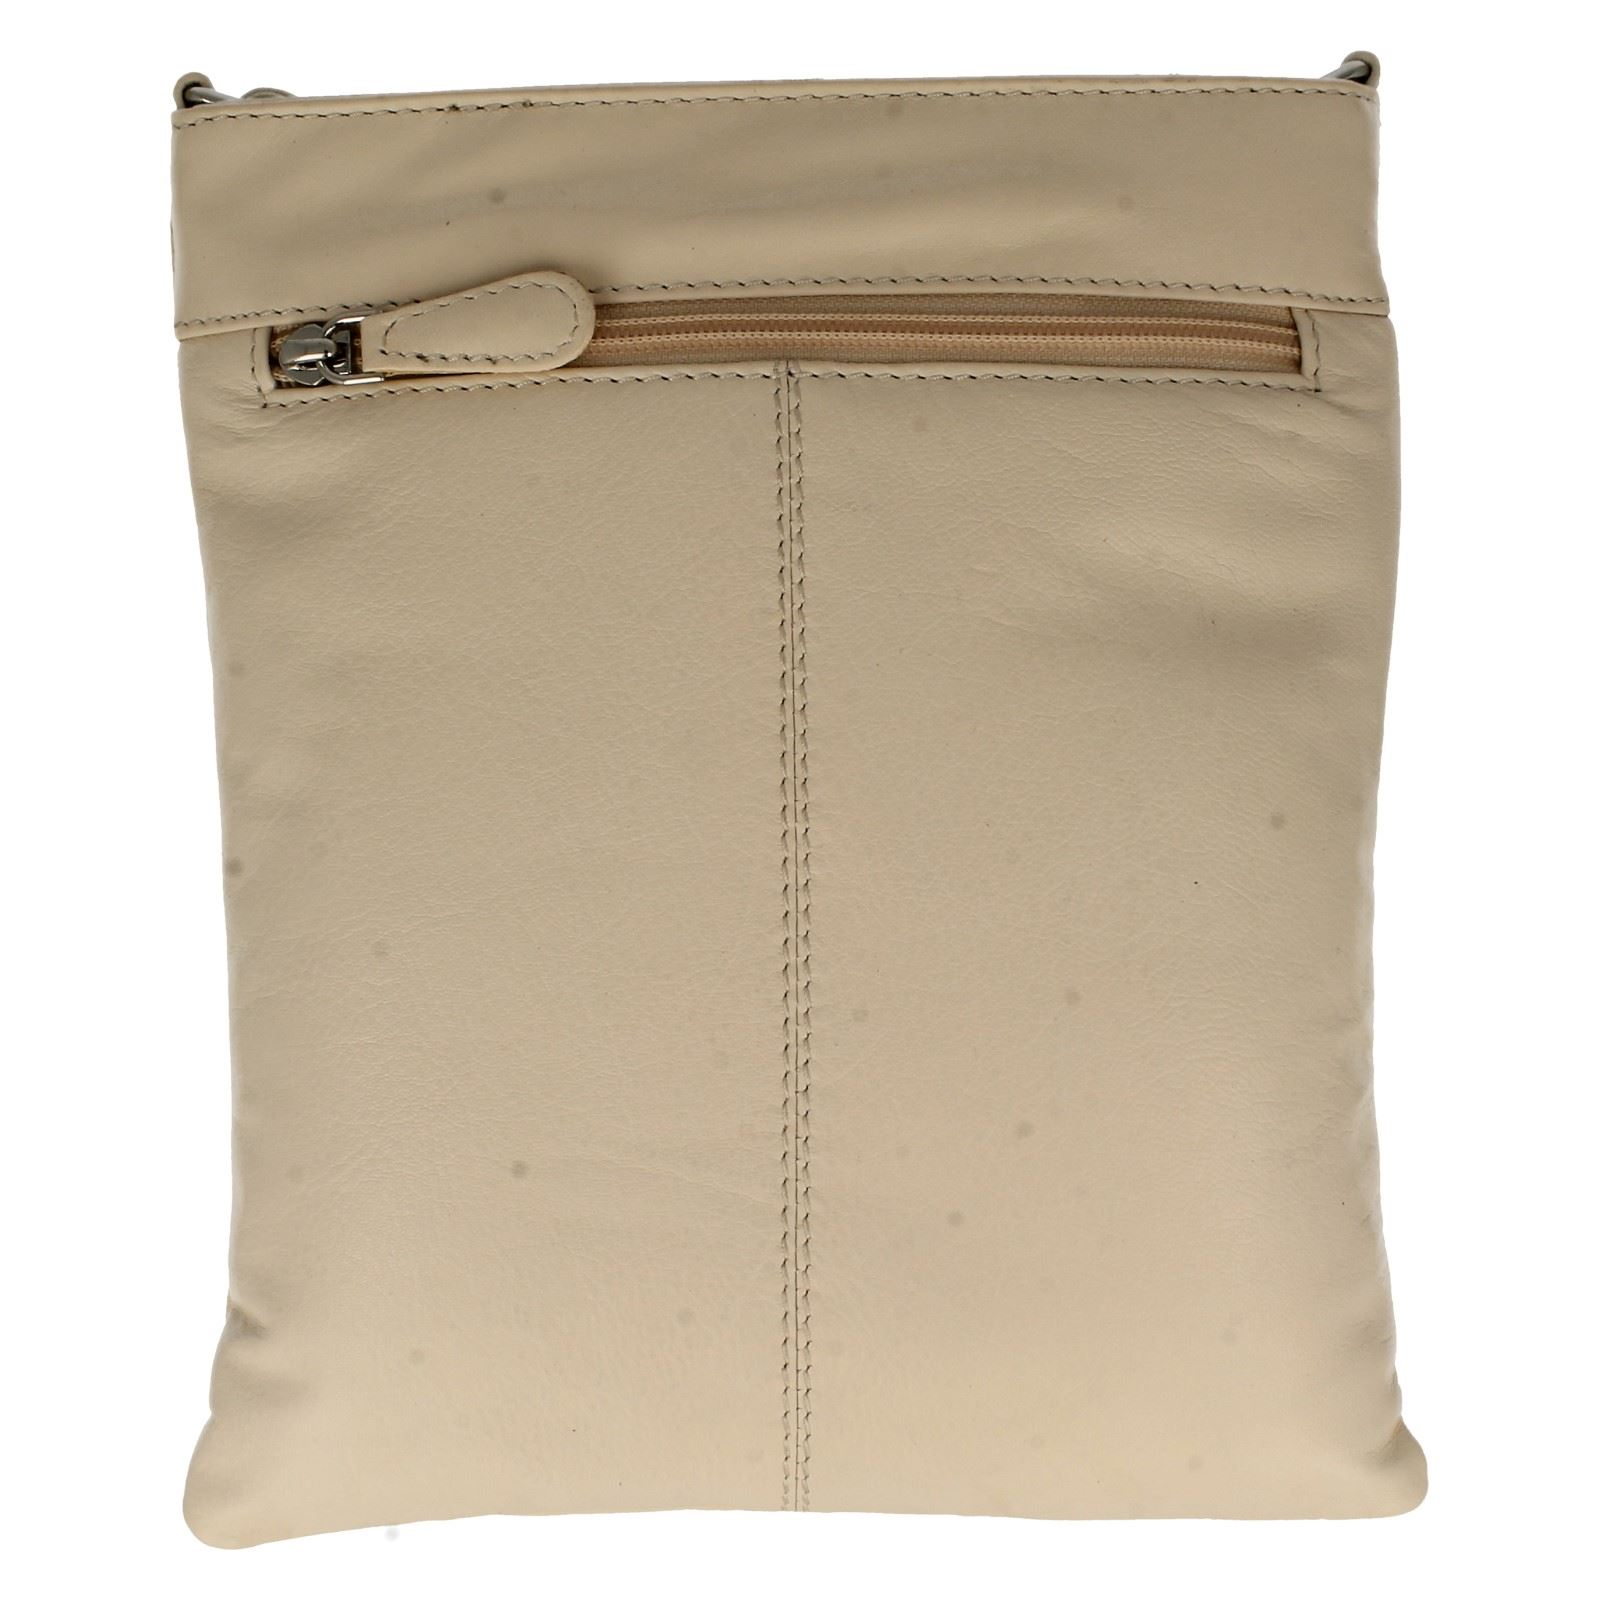 'timely Body Helen' Clarks Ladies Cotton Bags Cross Leather AqFnxXtwHS